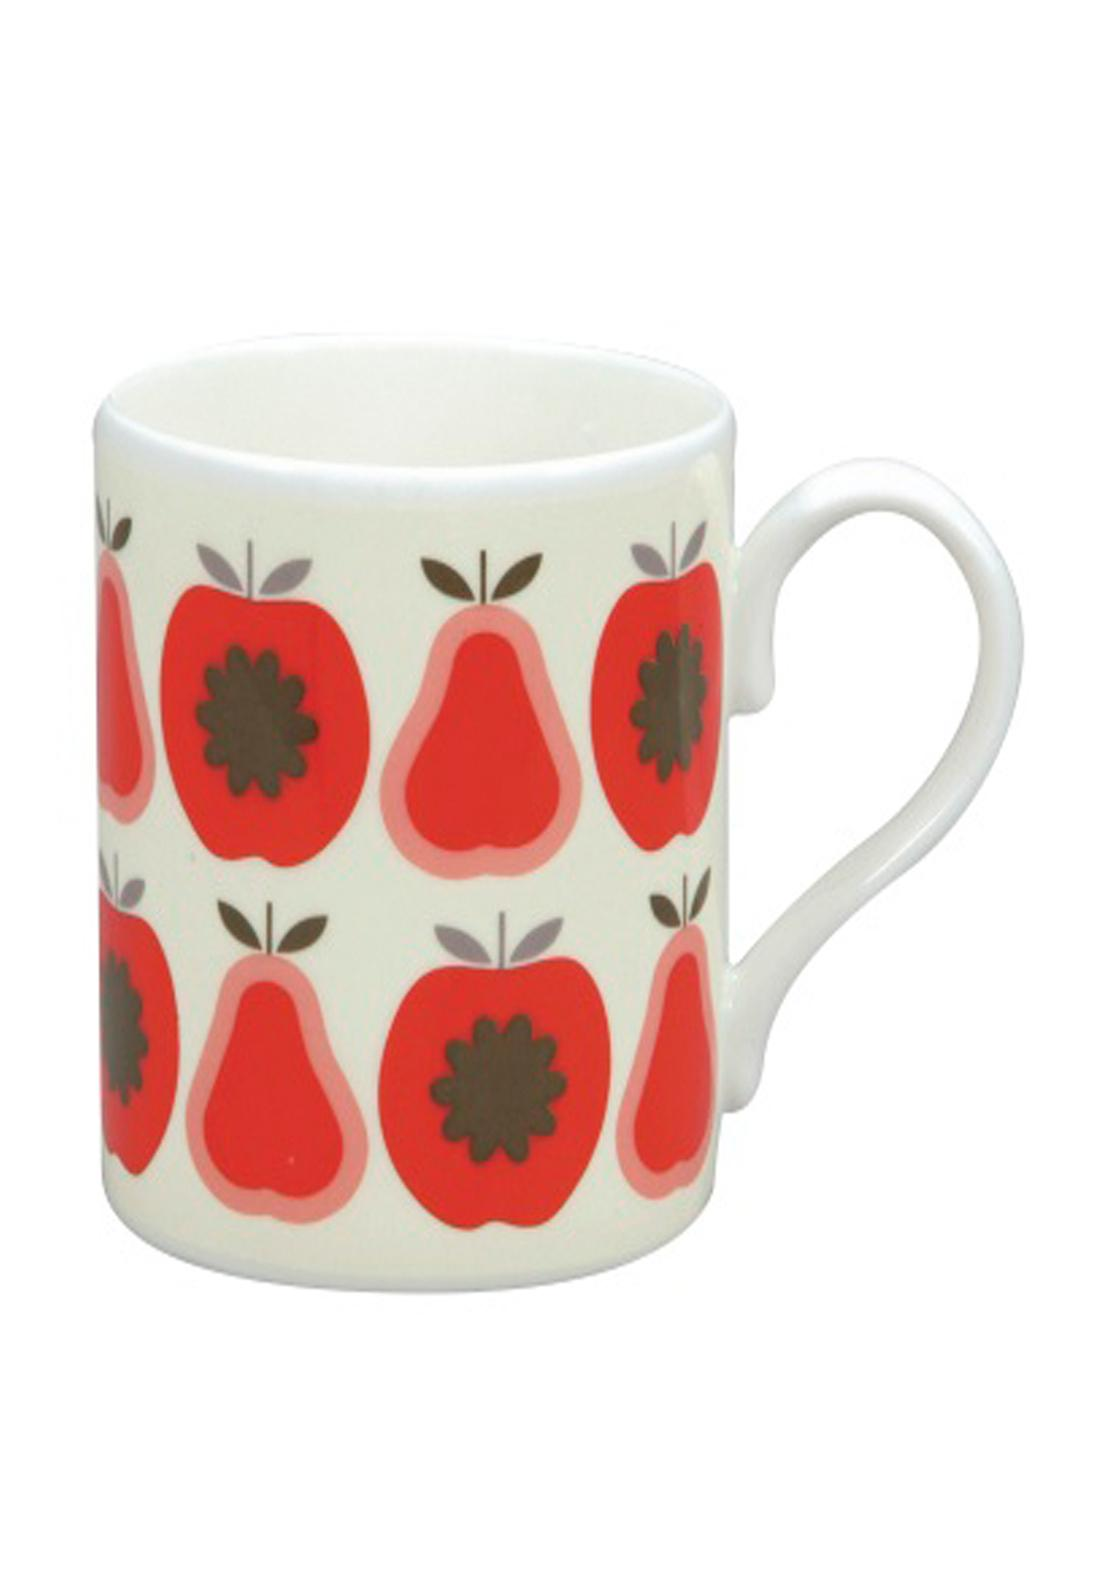 Orla Kiely Apple Pear Mug, Red